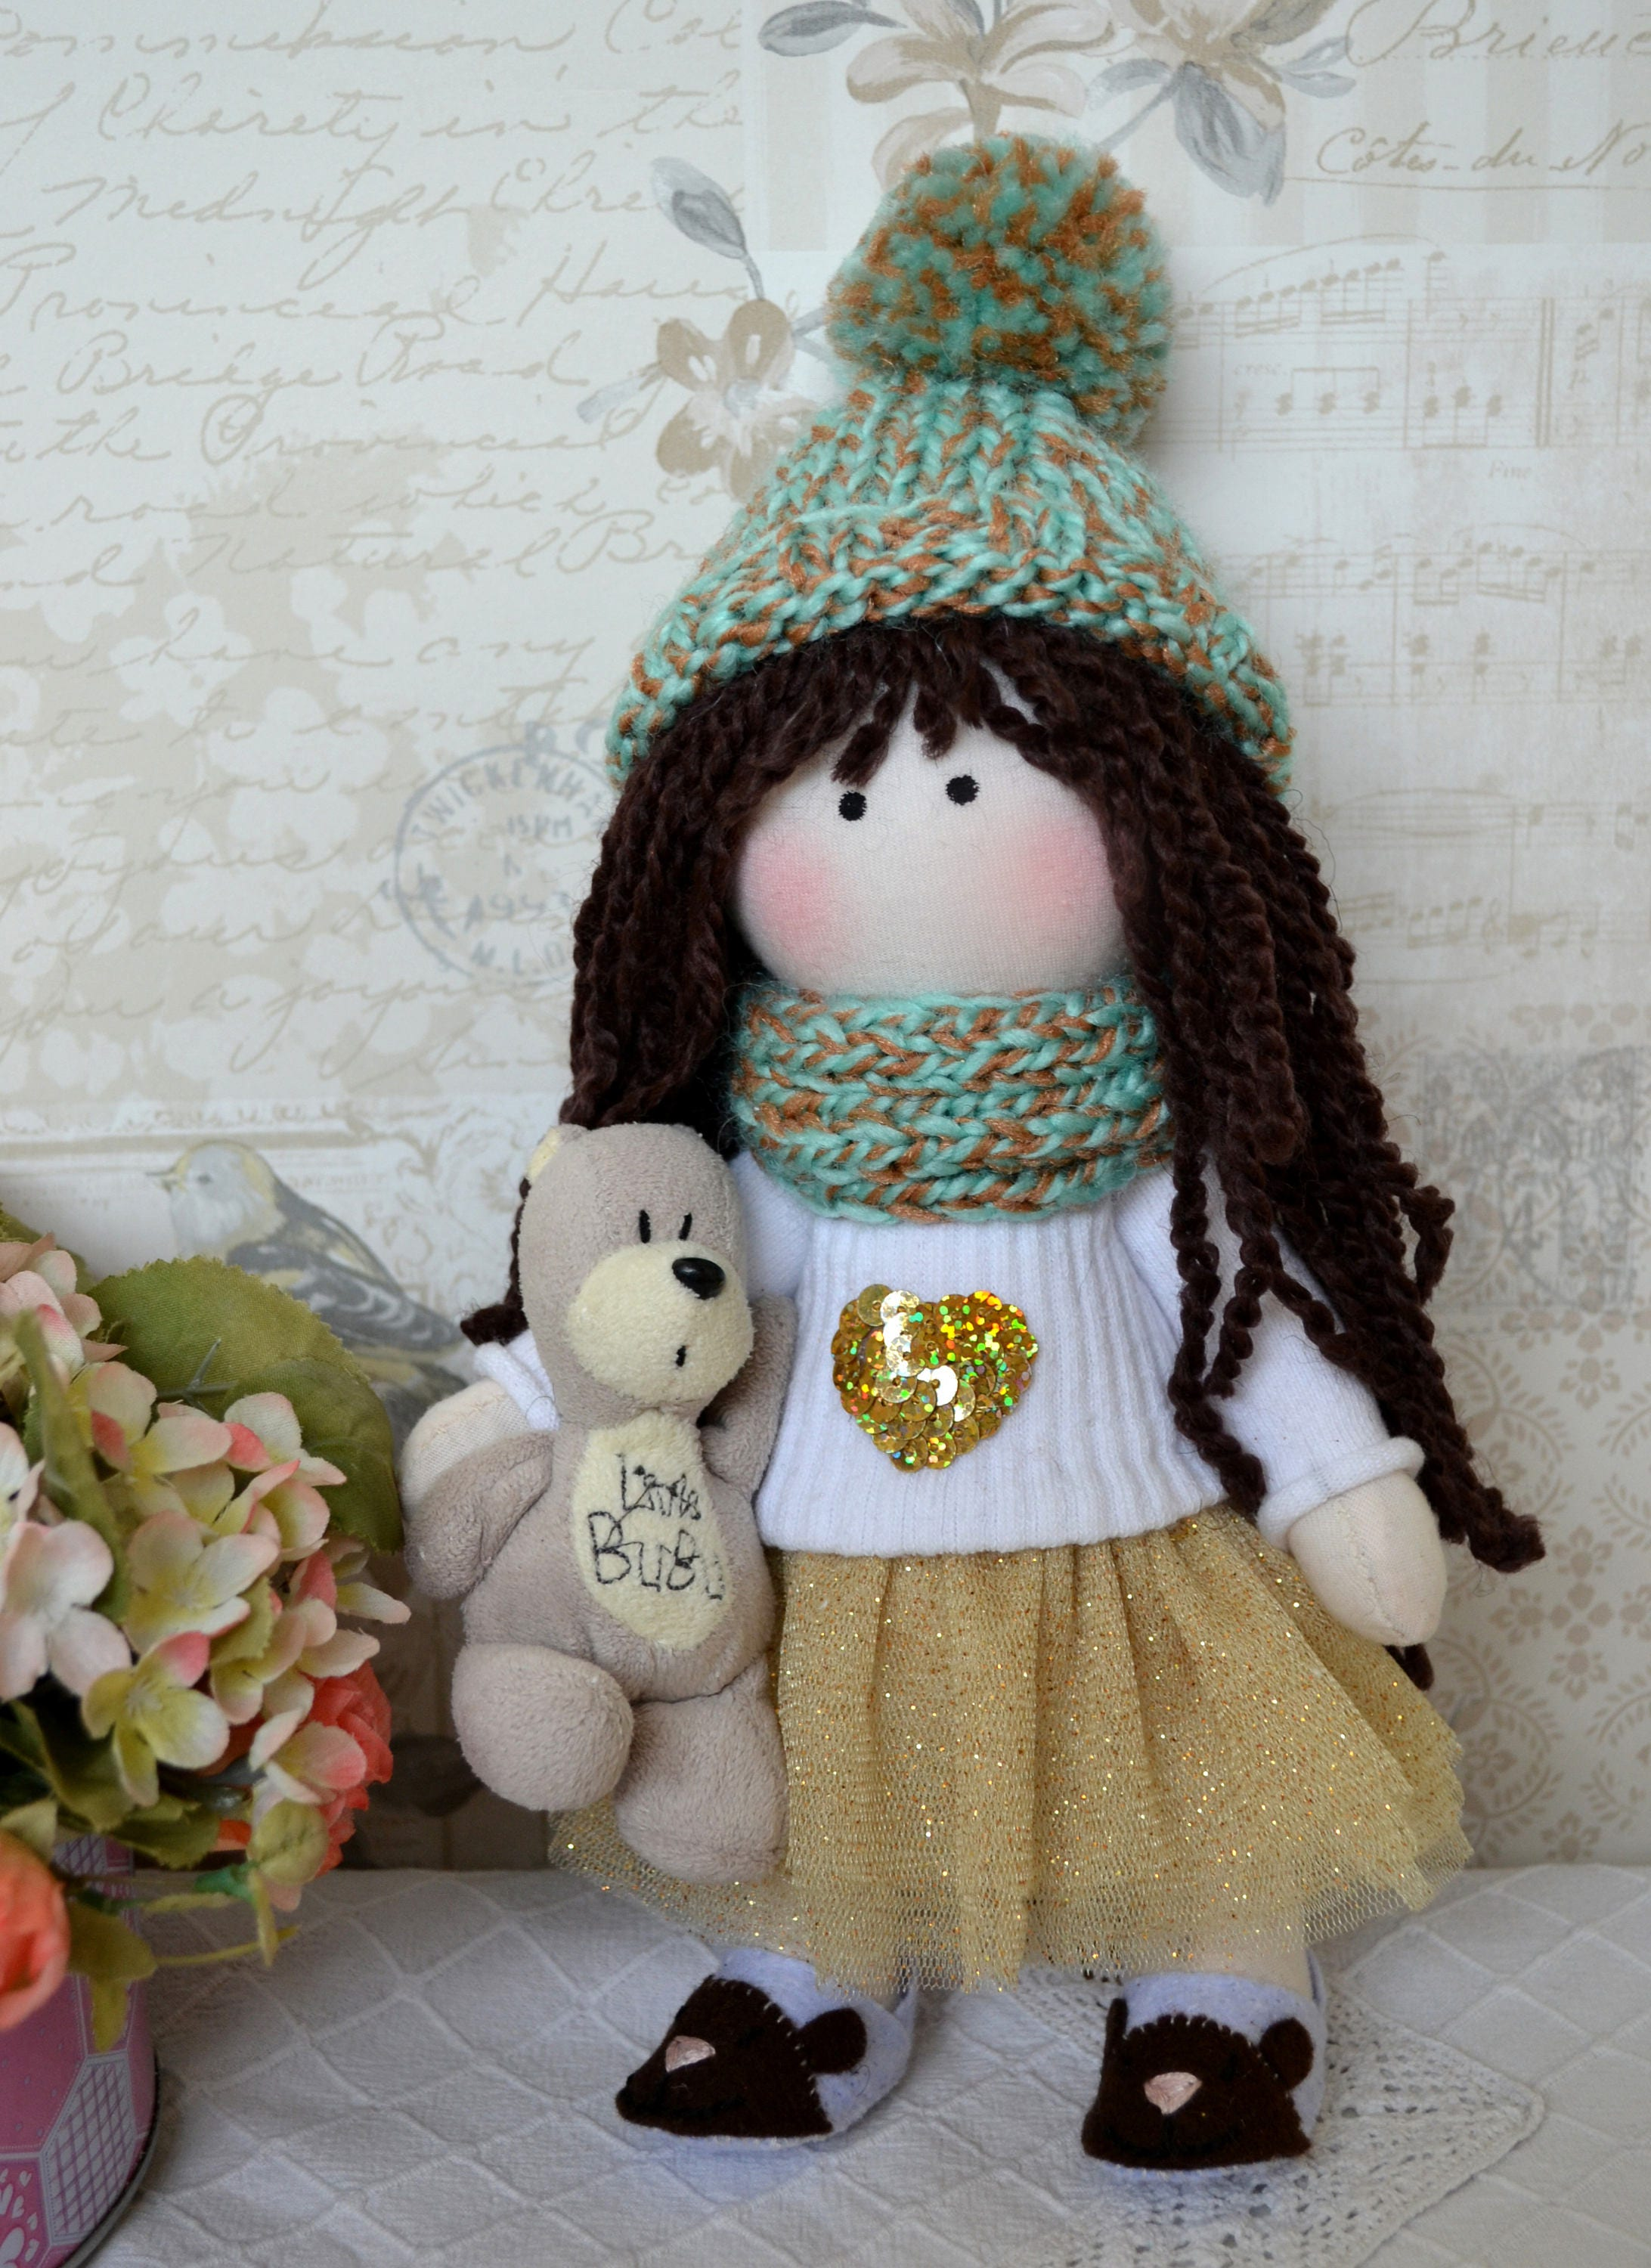 Chloe Handmade collectable Lindy doll toy Russian dolls hand stitched personalise cloth craft